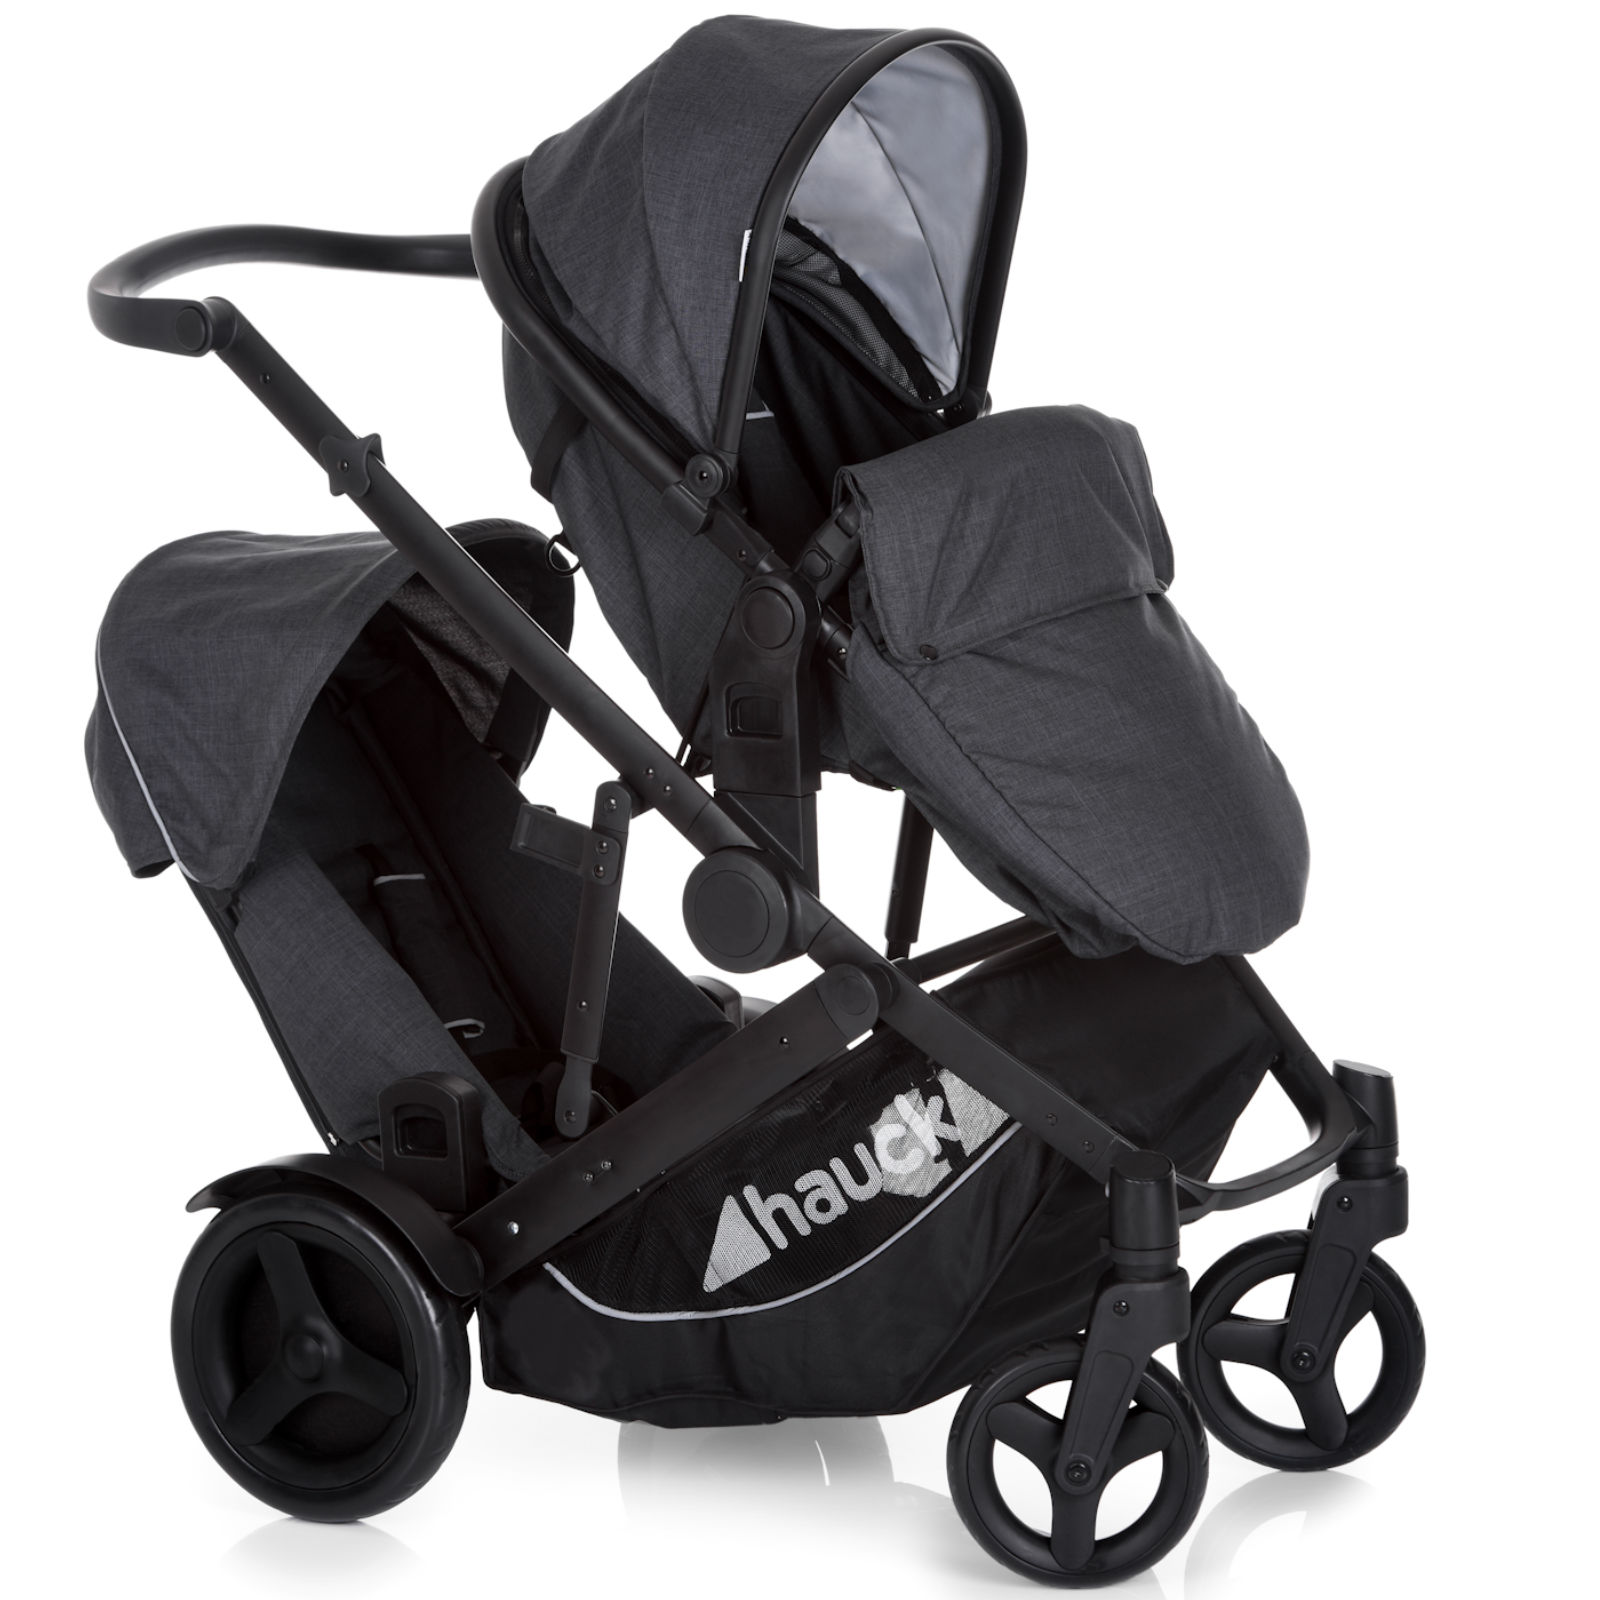 Twin Buggy Travel System Hauck Duett 3 Tandem Pushchair Melange Charcoal Buy At